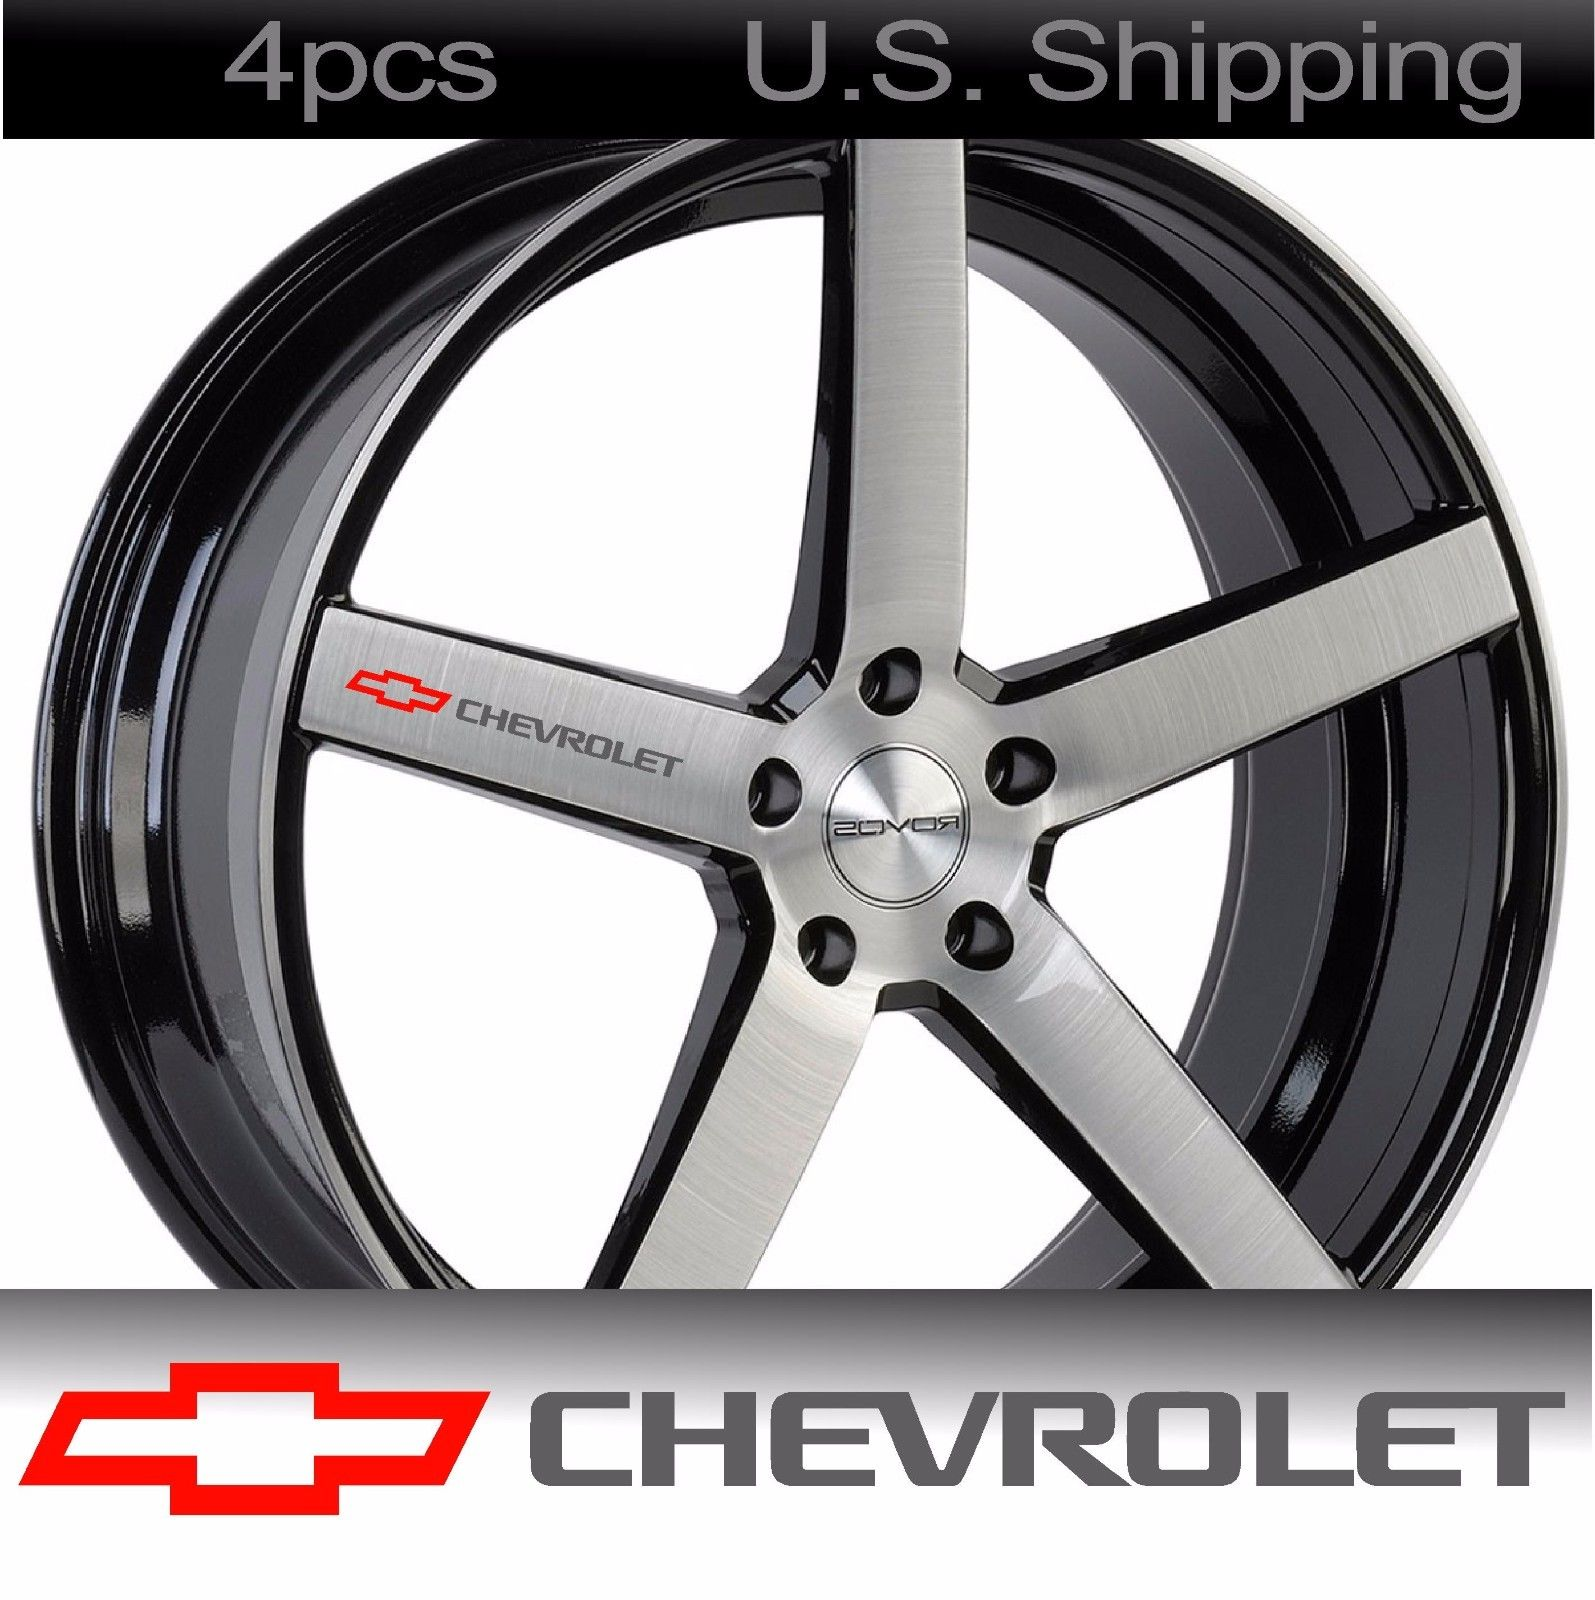 chevrolet tires and ford suvs gmc chevy trucks wheels for dodge lug ezdealin inch